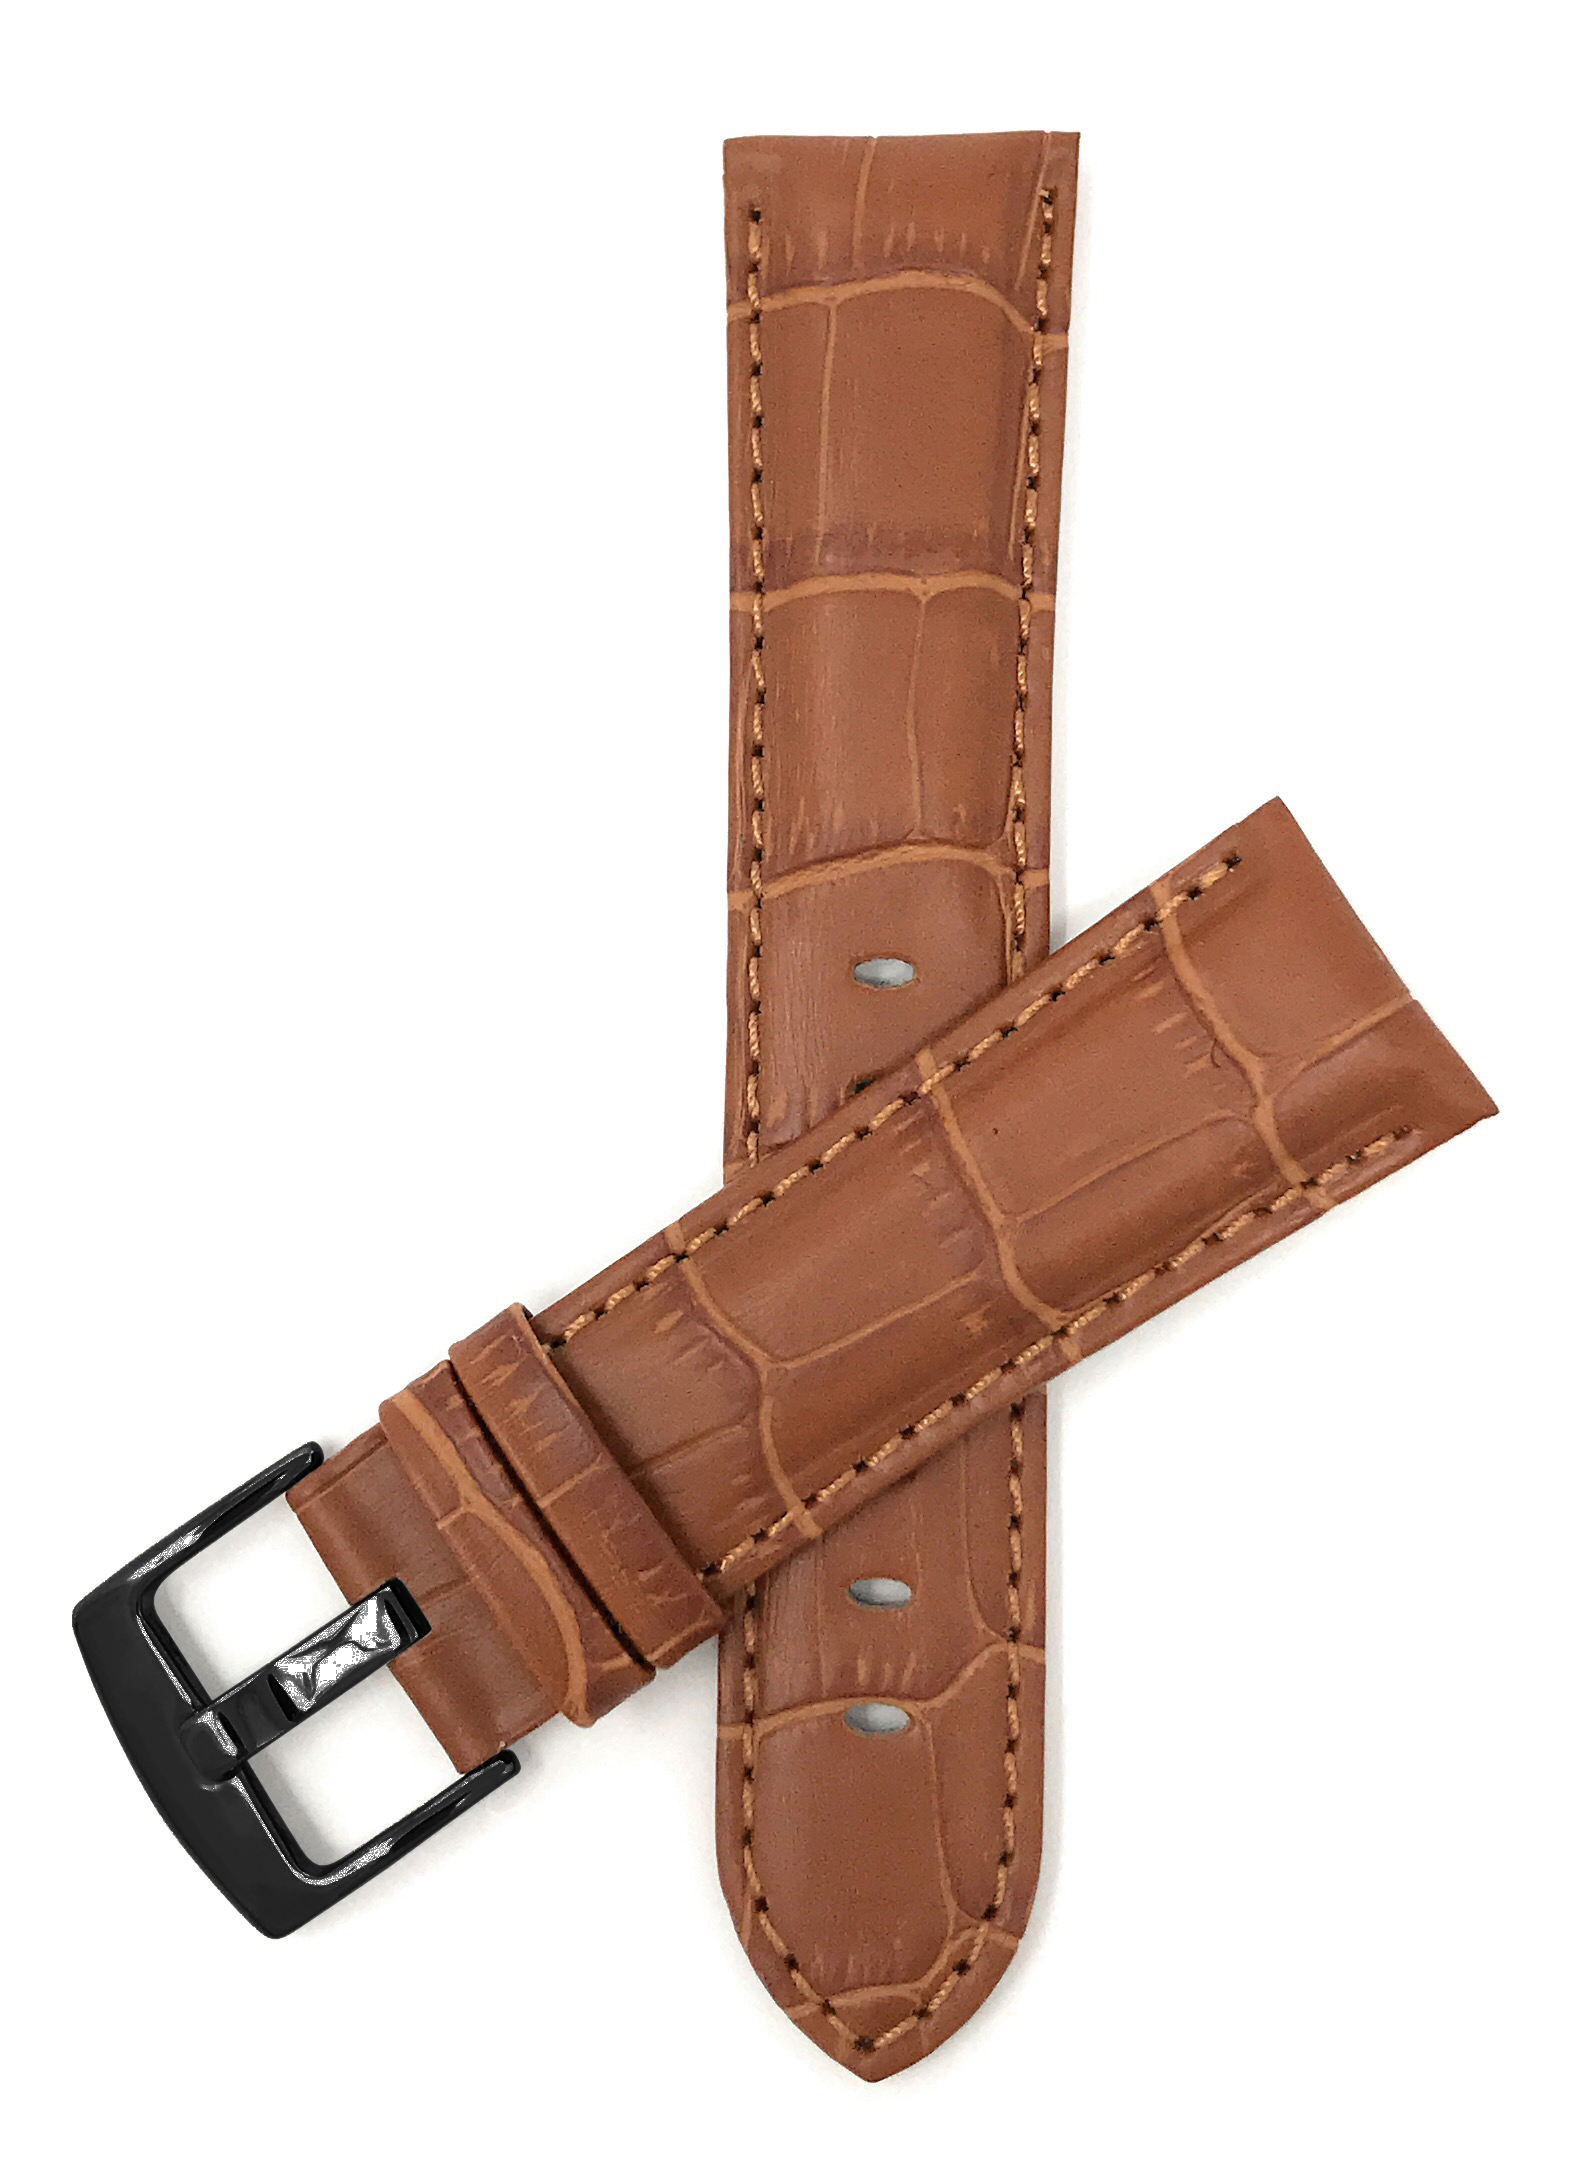 Bandini-Mens-Watch-Band-Alligator-Style-Leather-Strap-18mm-26mm-15-Colors thumbnail 42